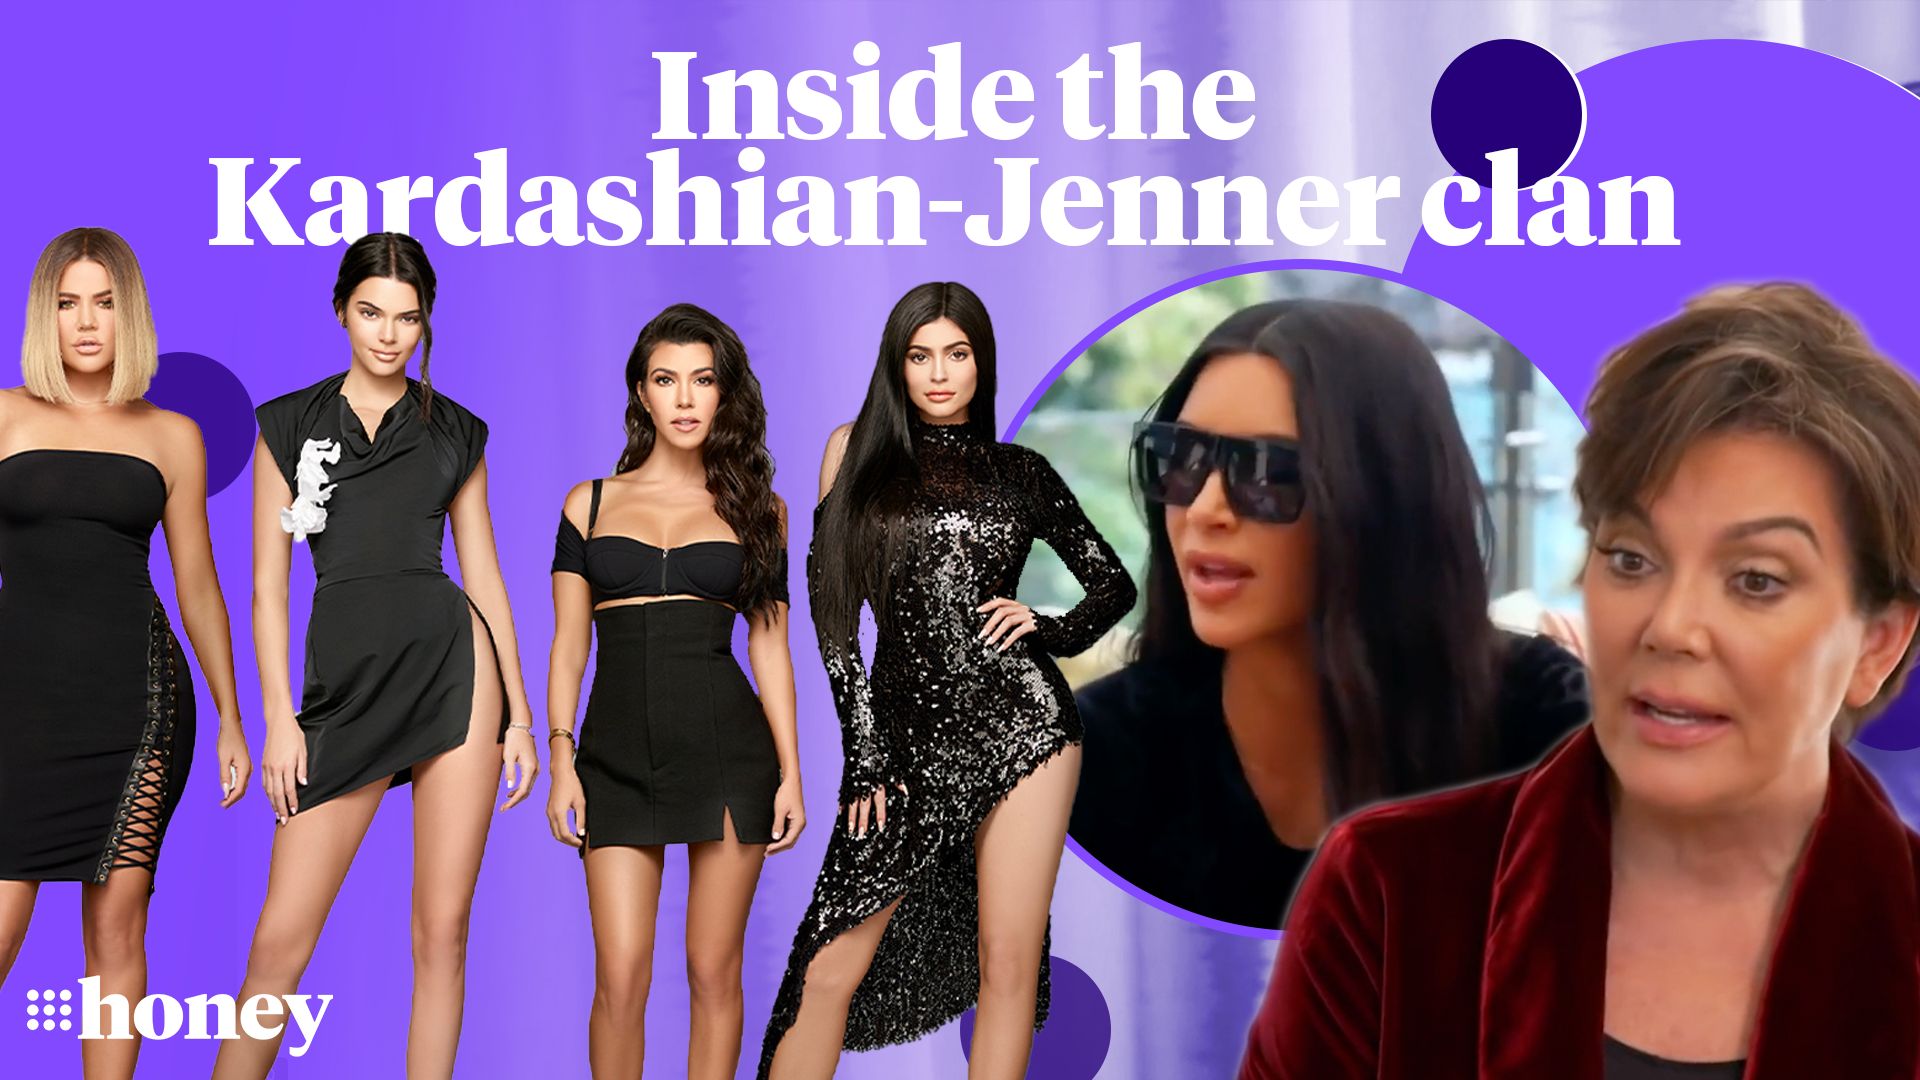 Inside the Kardashian-Jenner clan, the stars of Keeping Up with the Kardashians